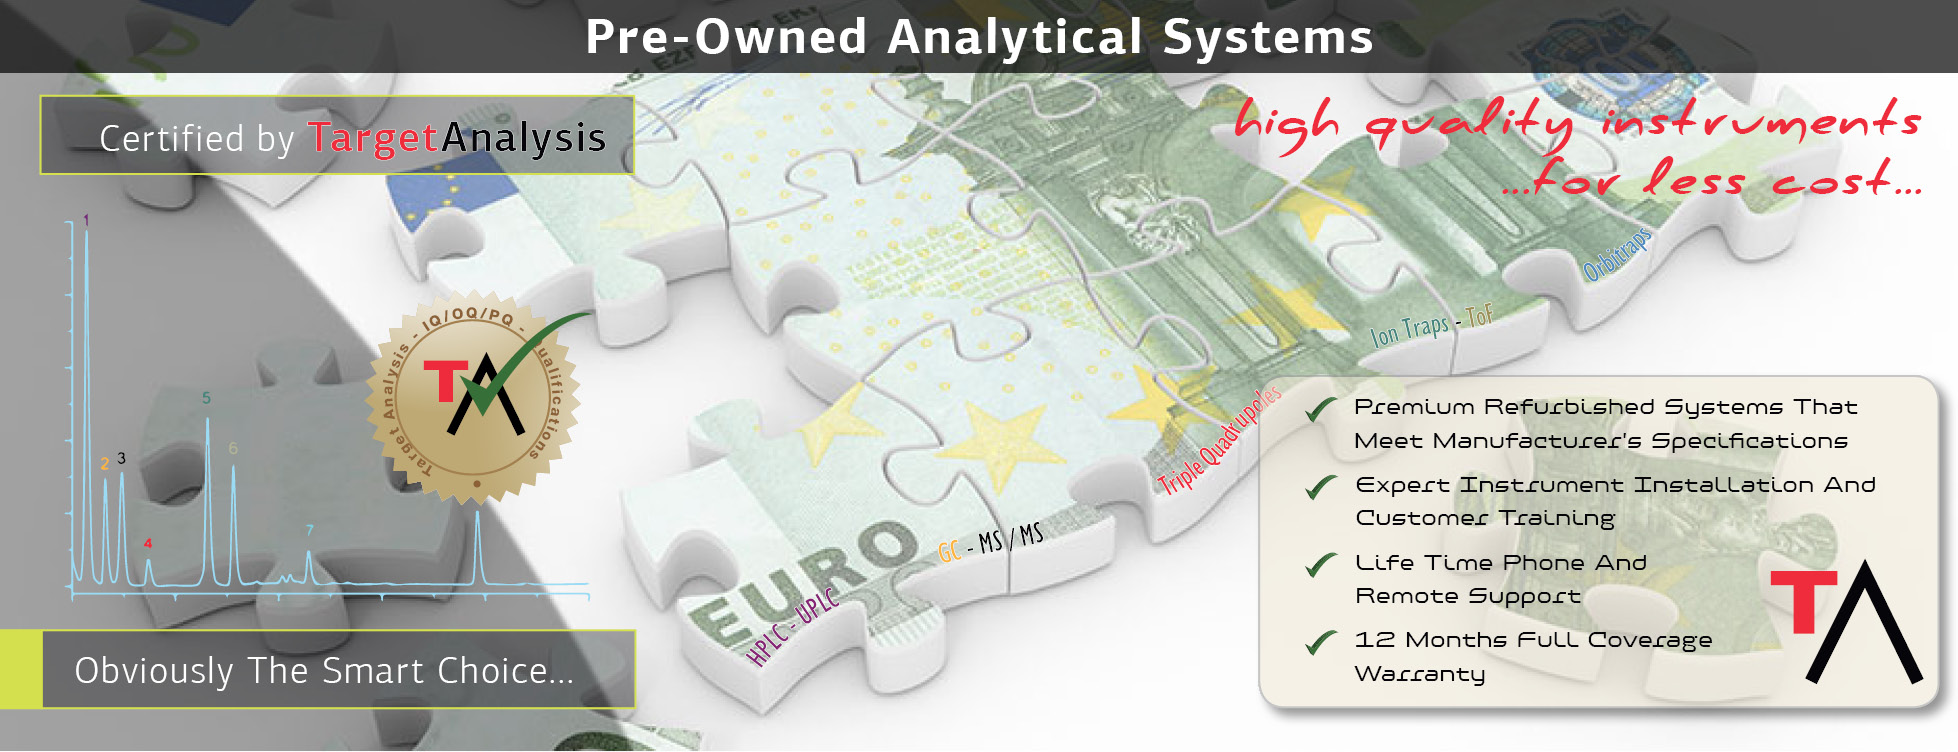 Overview and analysis of target system